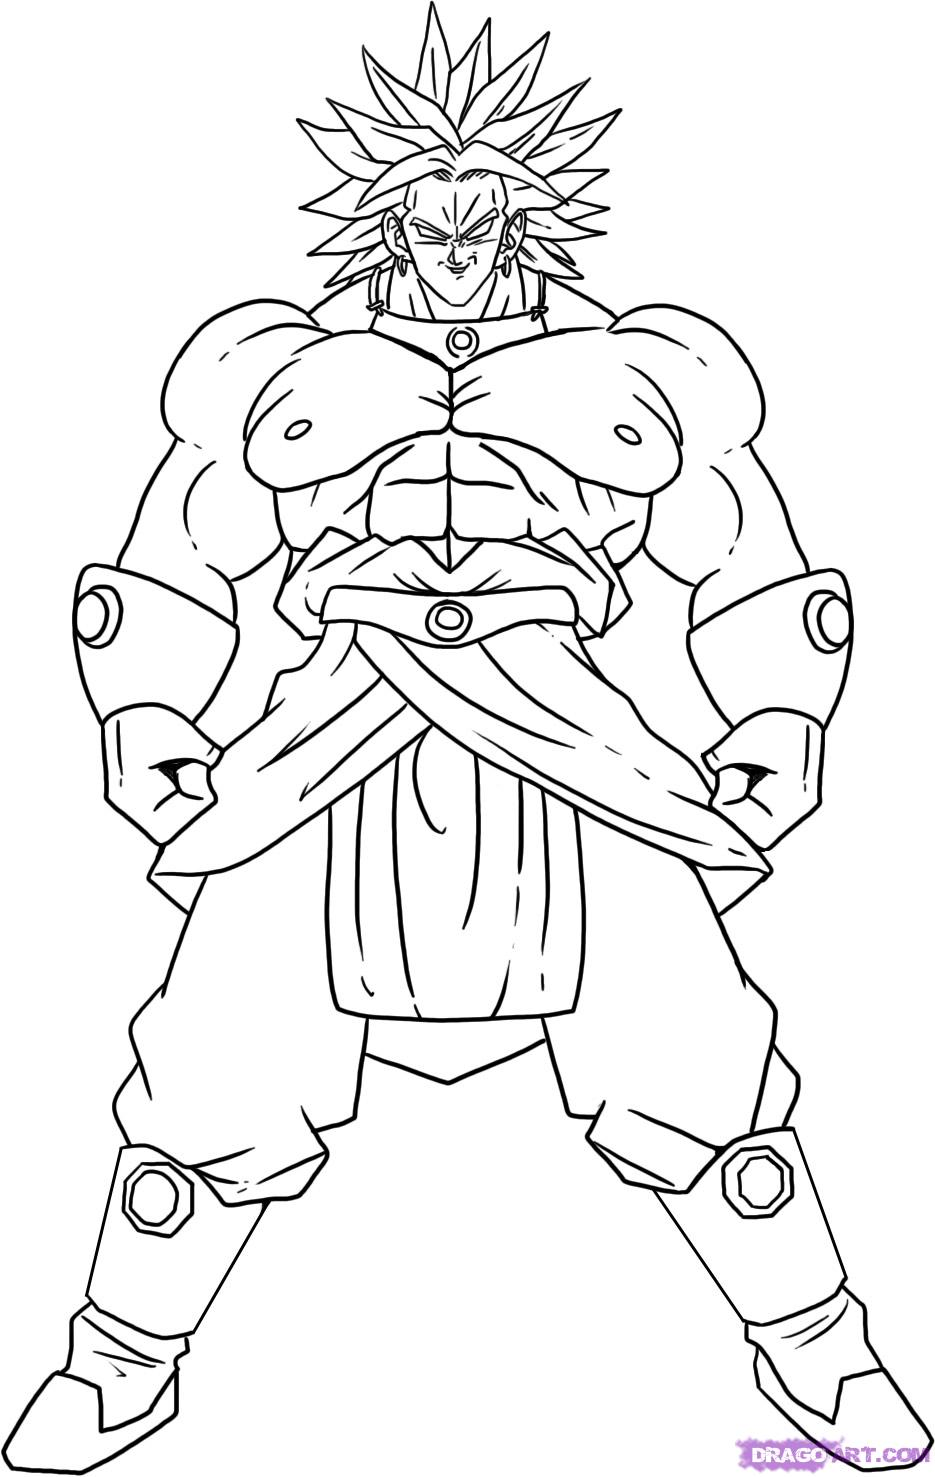 Dragon ball z wallpapers broly legendary super saiyan for Dragon ball z cell coloring pages